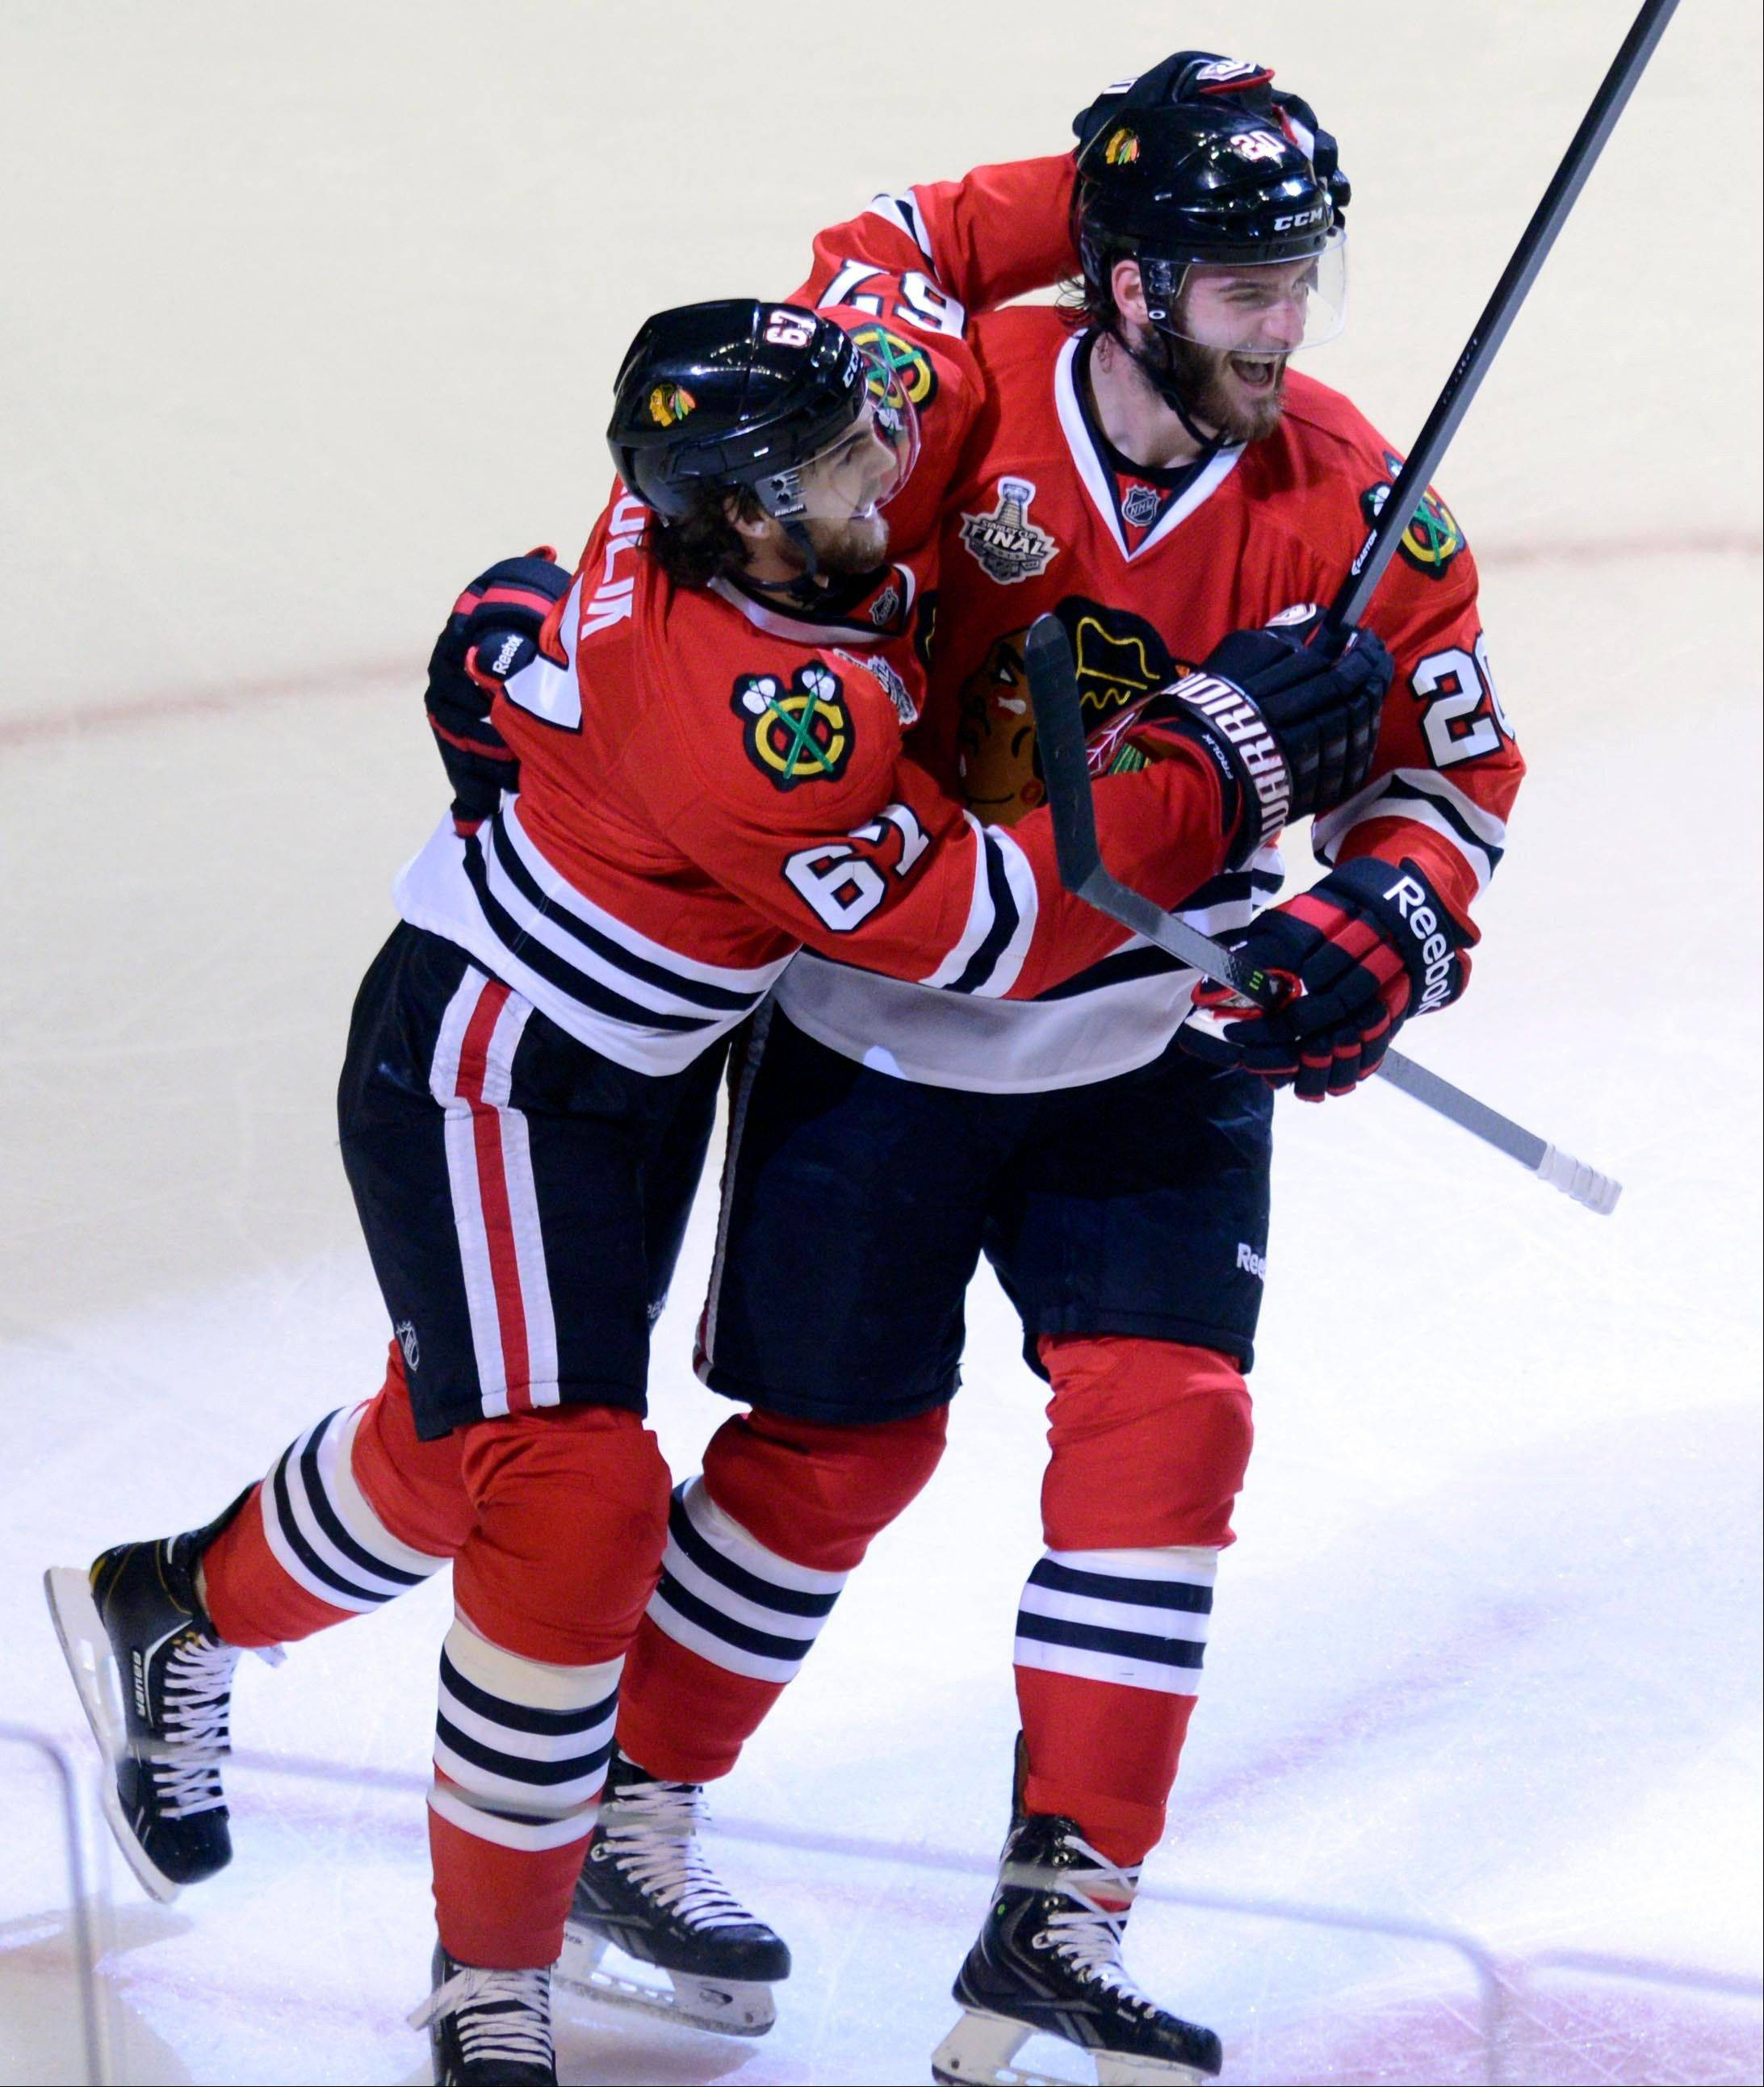 Blackhawks center Michael Frolik and left wing Brandon Saad, here celebrating a goal in Game 1 of the Stanley Cup Final, have enjoyed great success as part of GM Stan Bowman's roster this season.